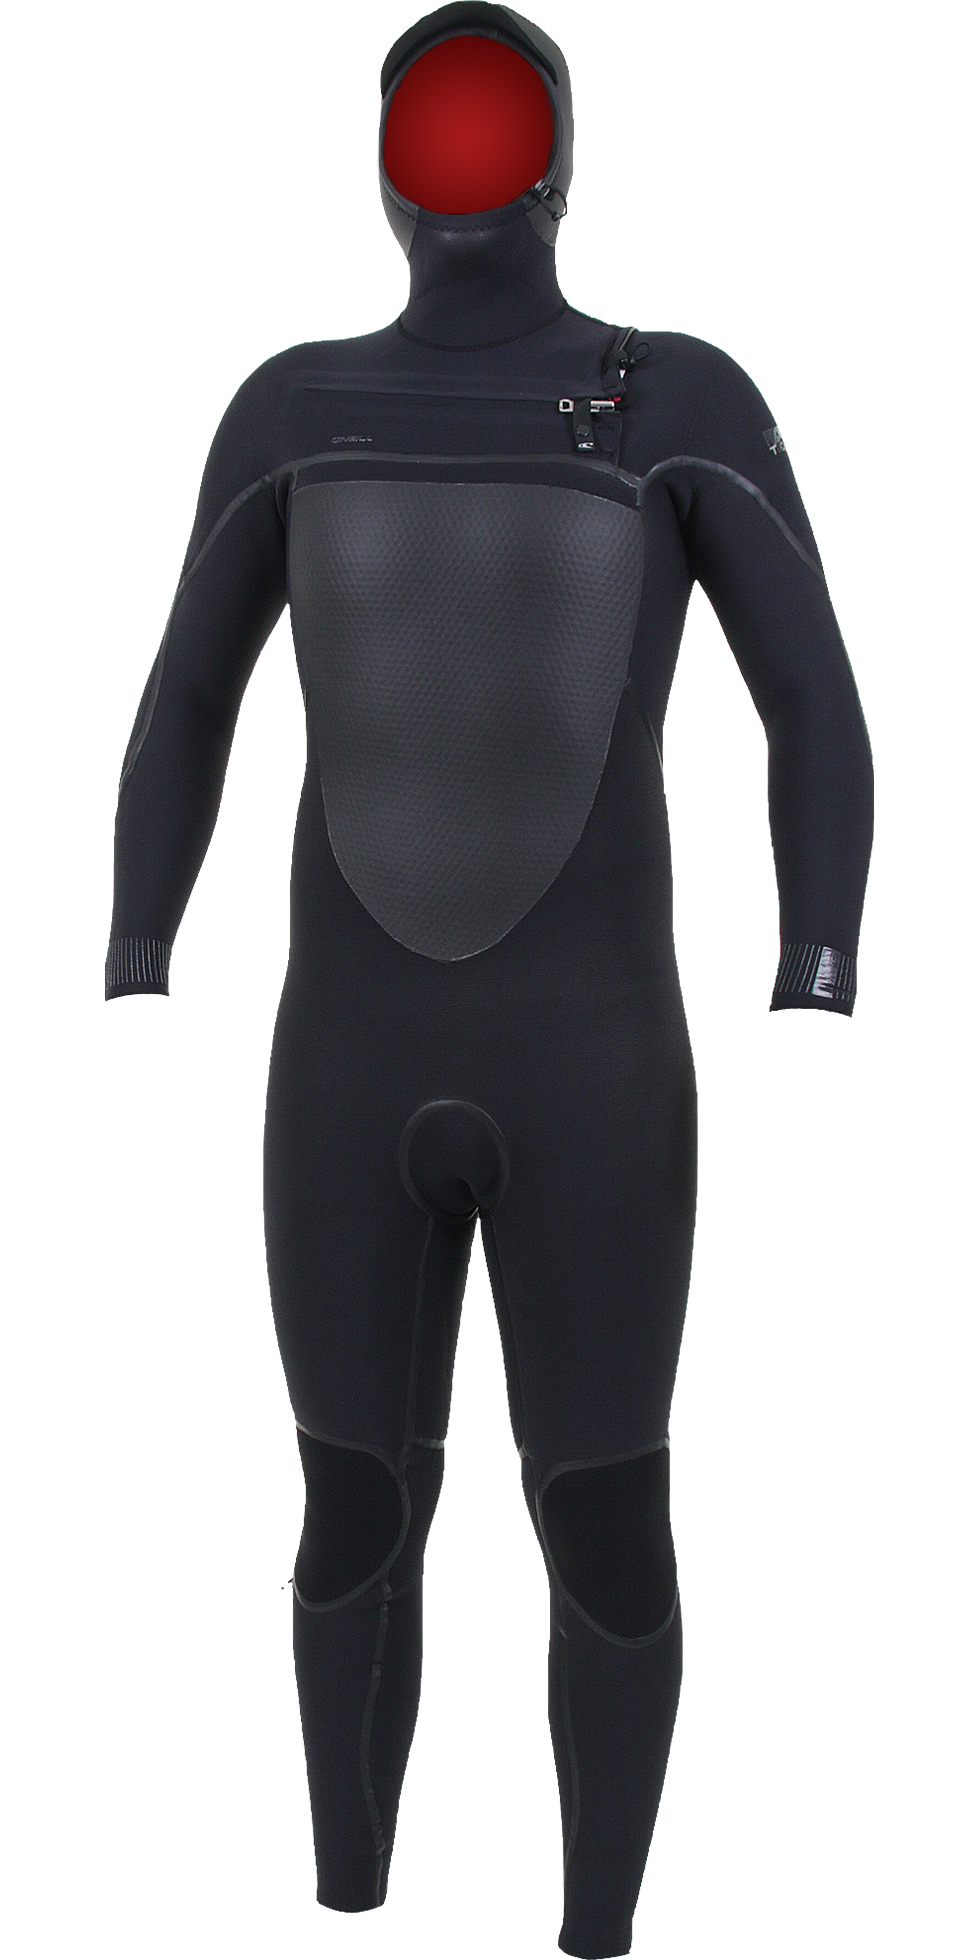 2019 O'Neill Psycho Tech 6/4mm Chest Zip Hooded Wetsuit Black 5366